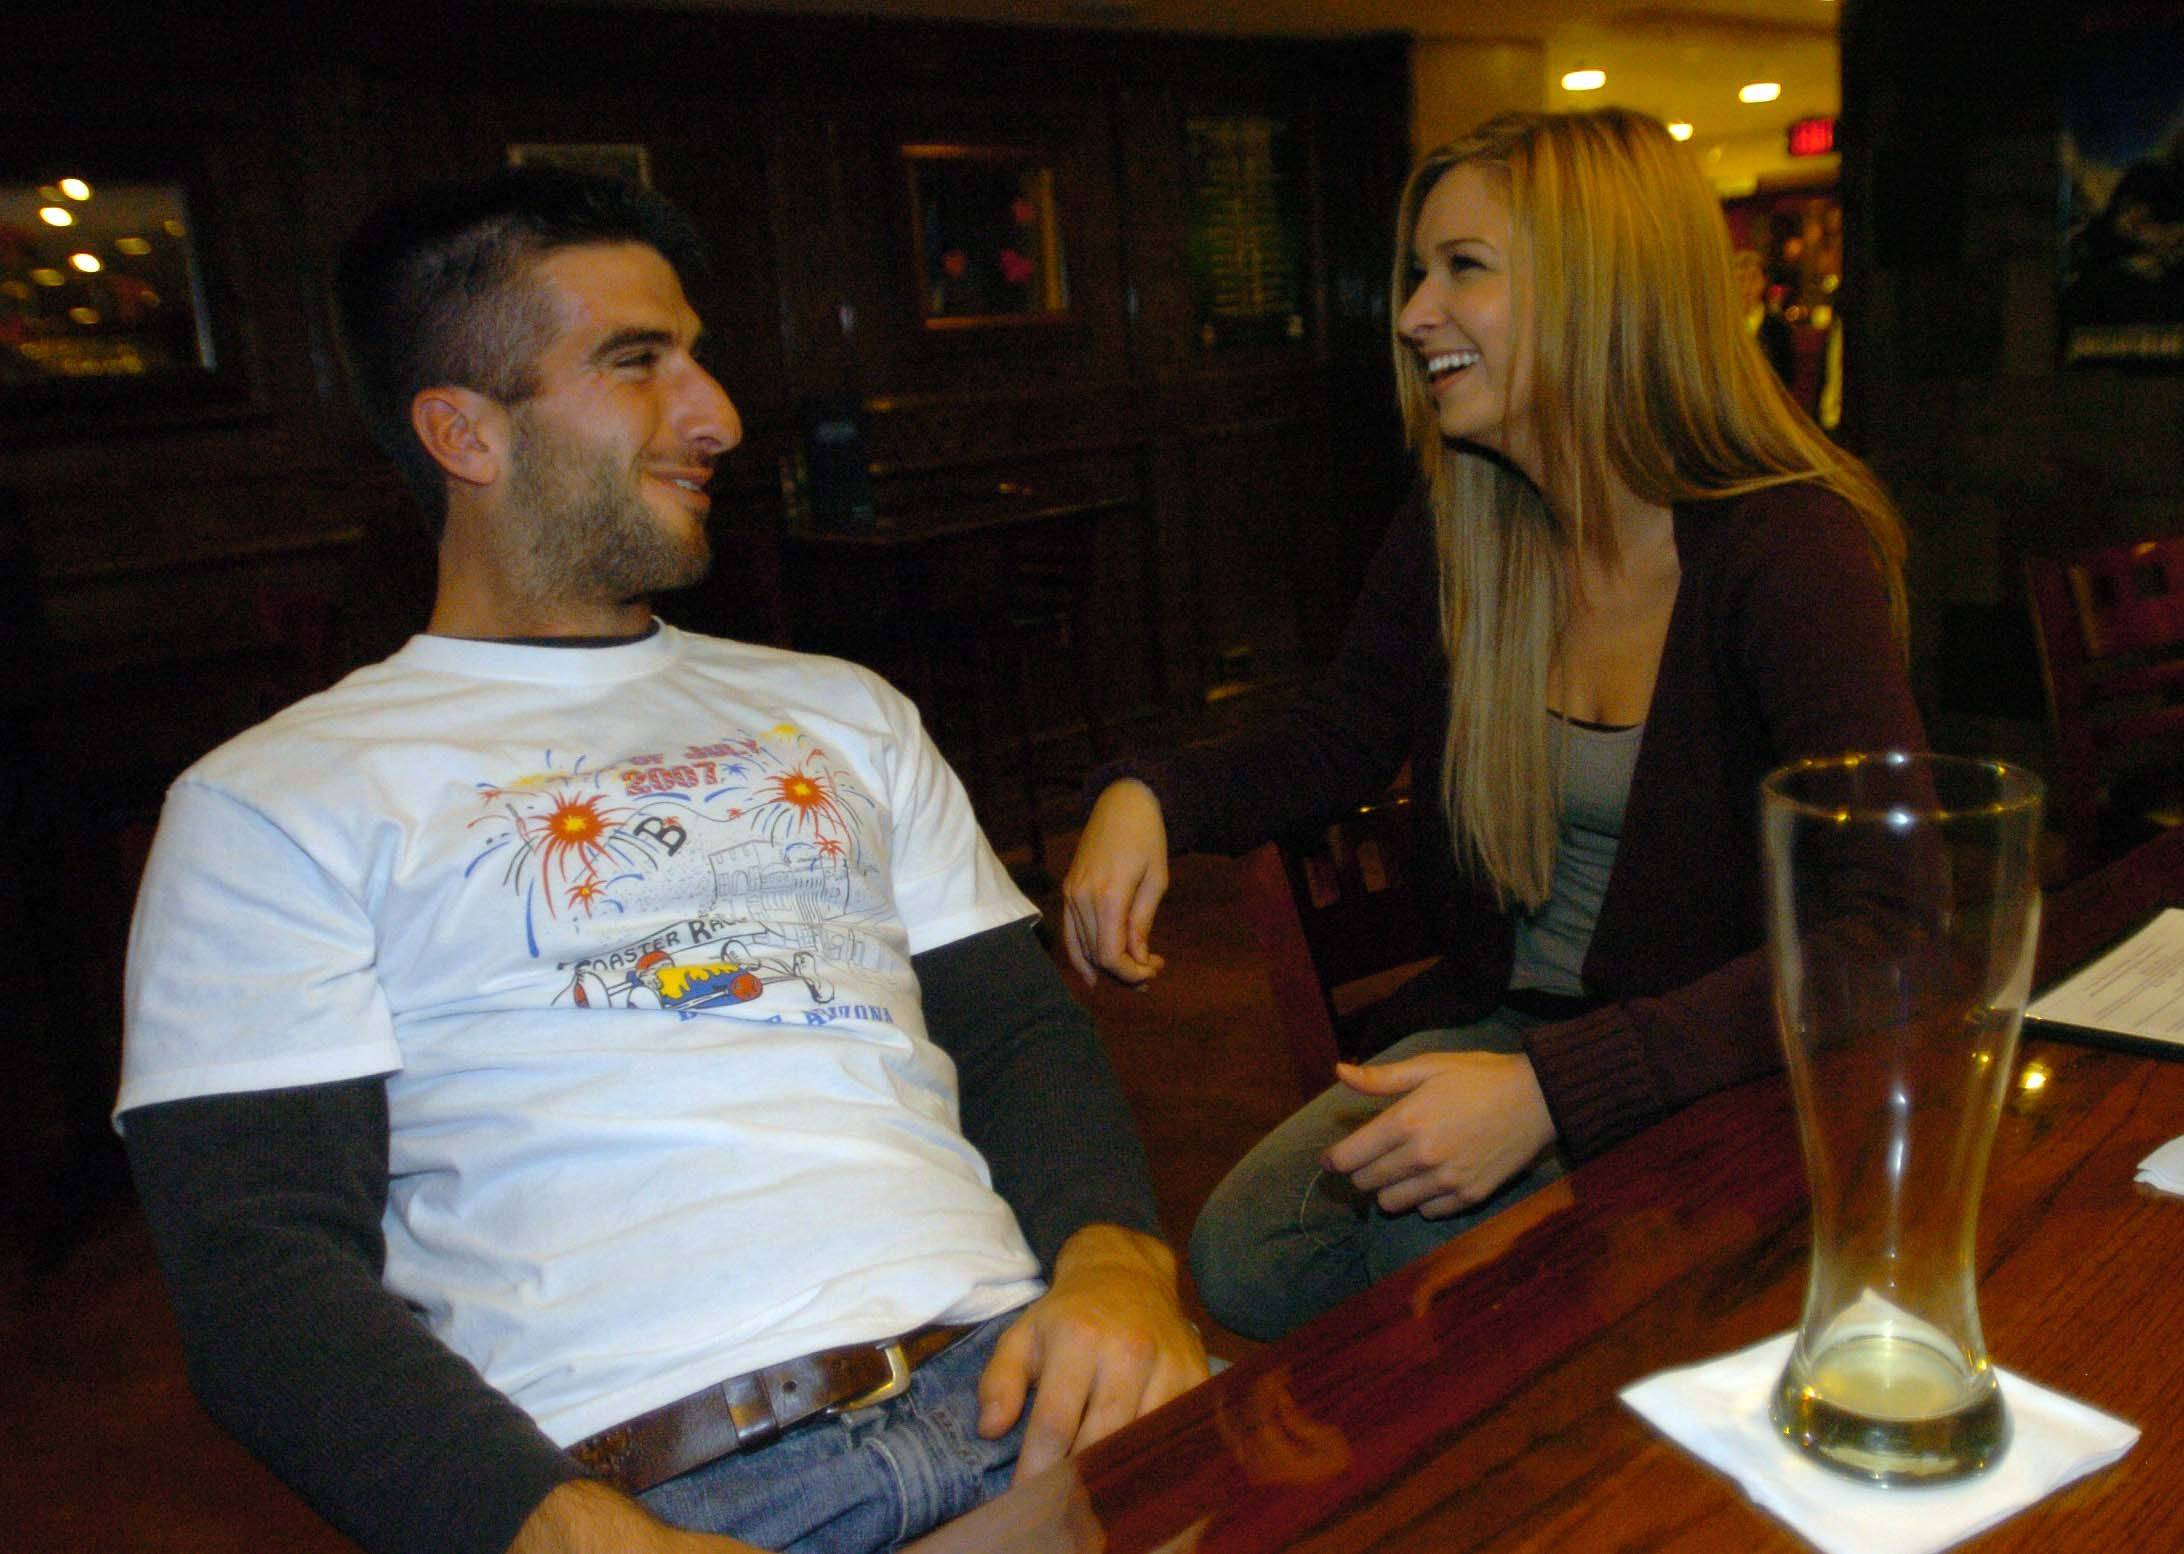 Micah Bank, left, and Jenni Marks talk over drinks at Limestone Brewery in Plainfield.